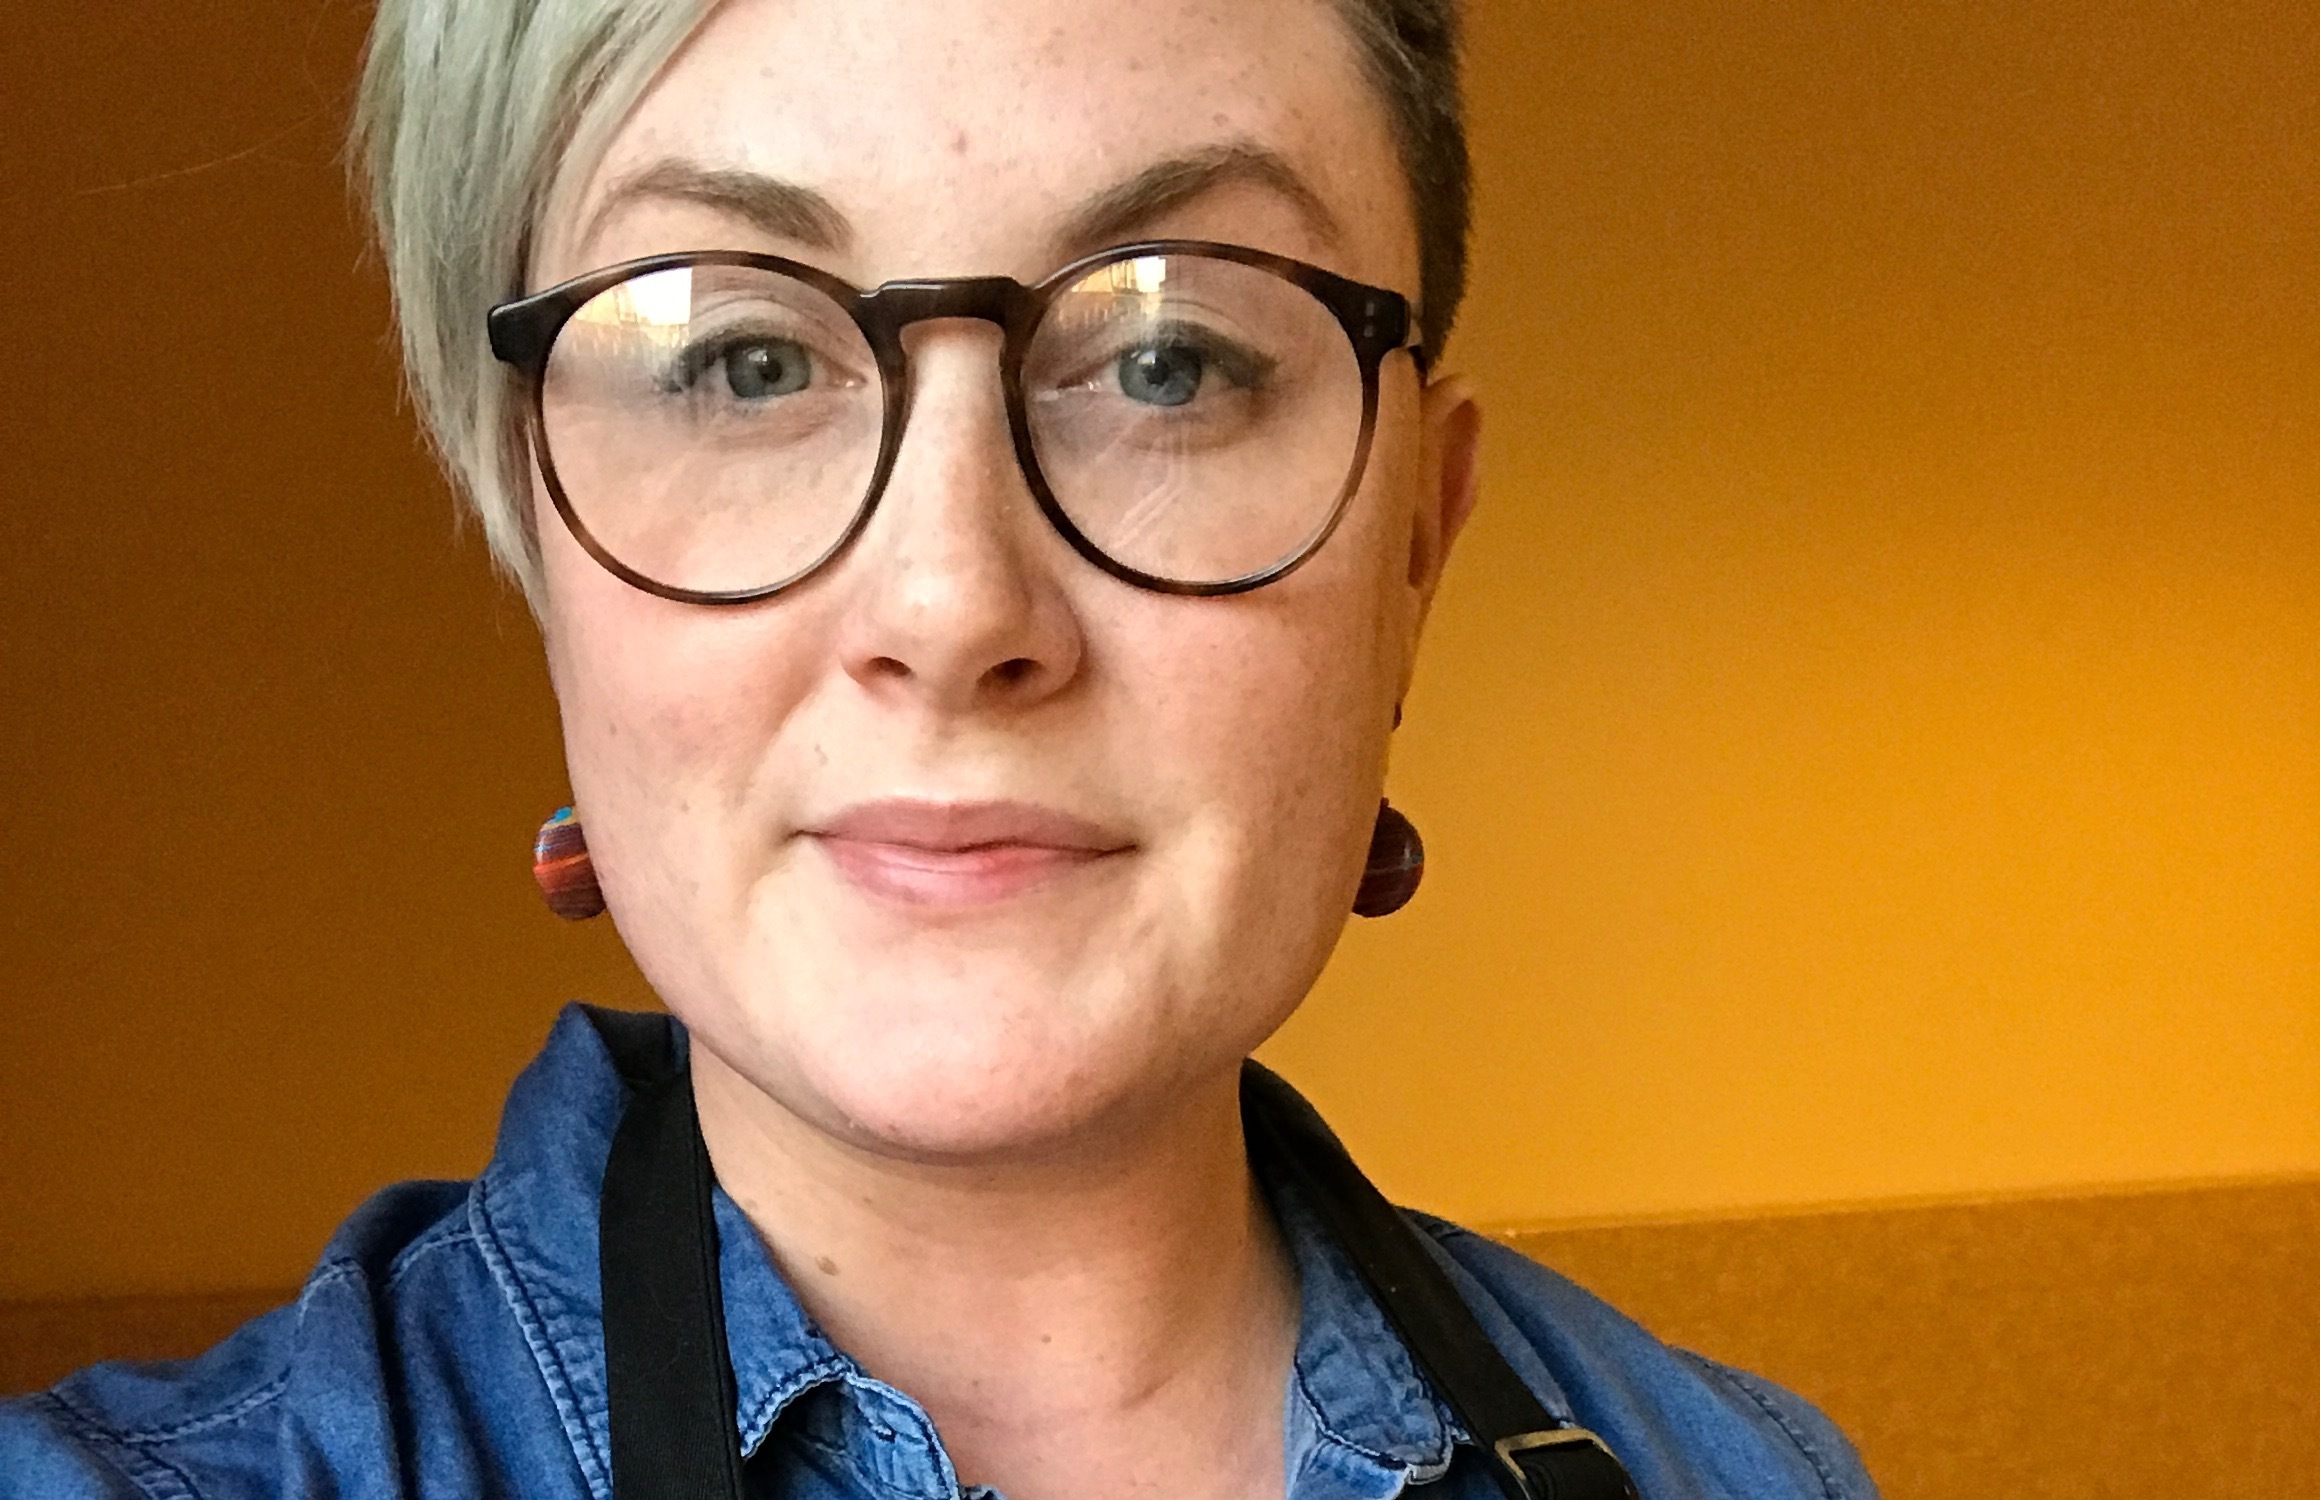 Emily Conner - Emily is one of the hosts of The Great American Love Story, and making people laugh has always been the most important thing to her. She is also a museum profession currently working at The American Visionary Art Museum.